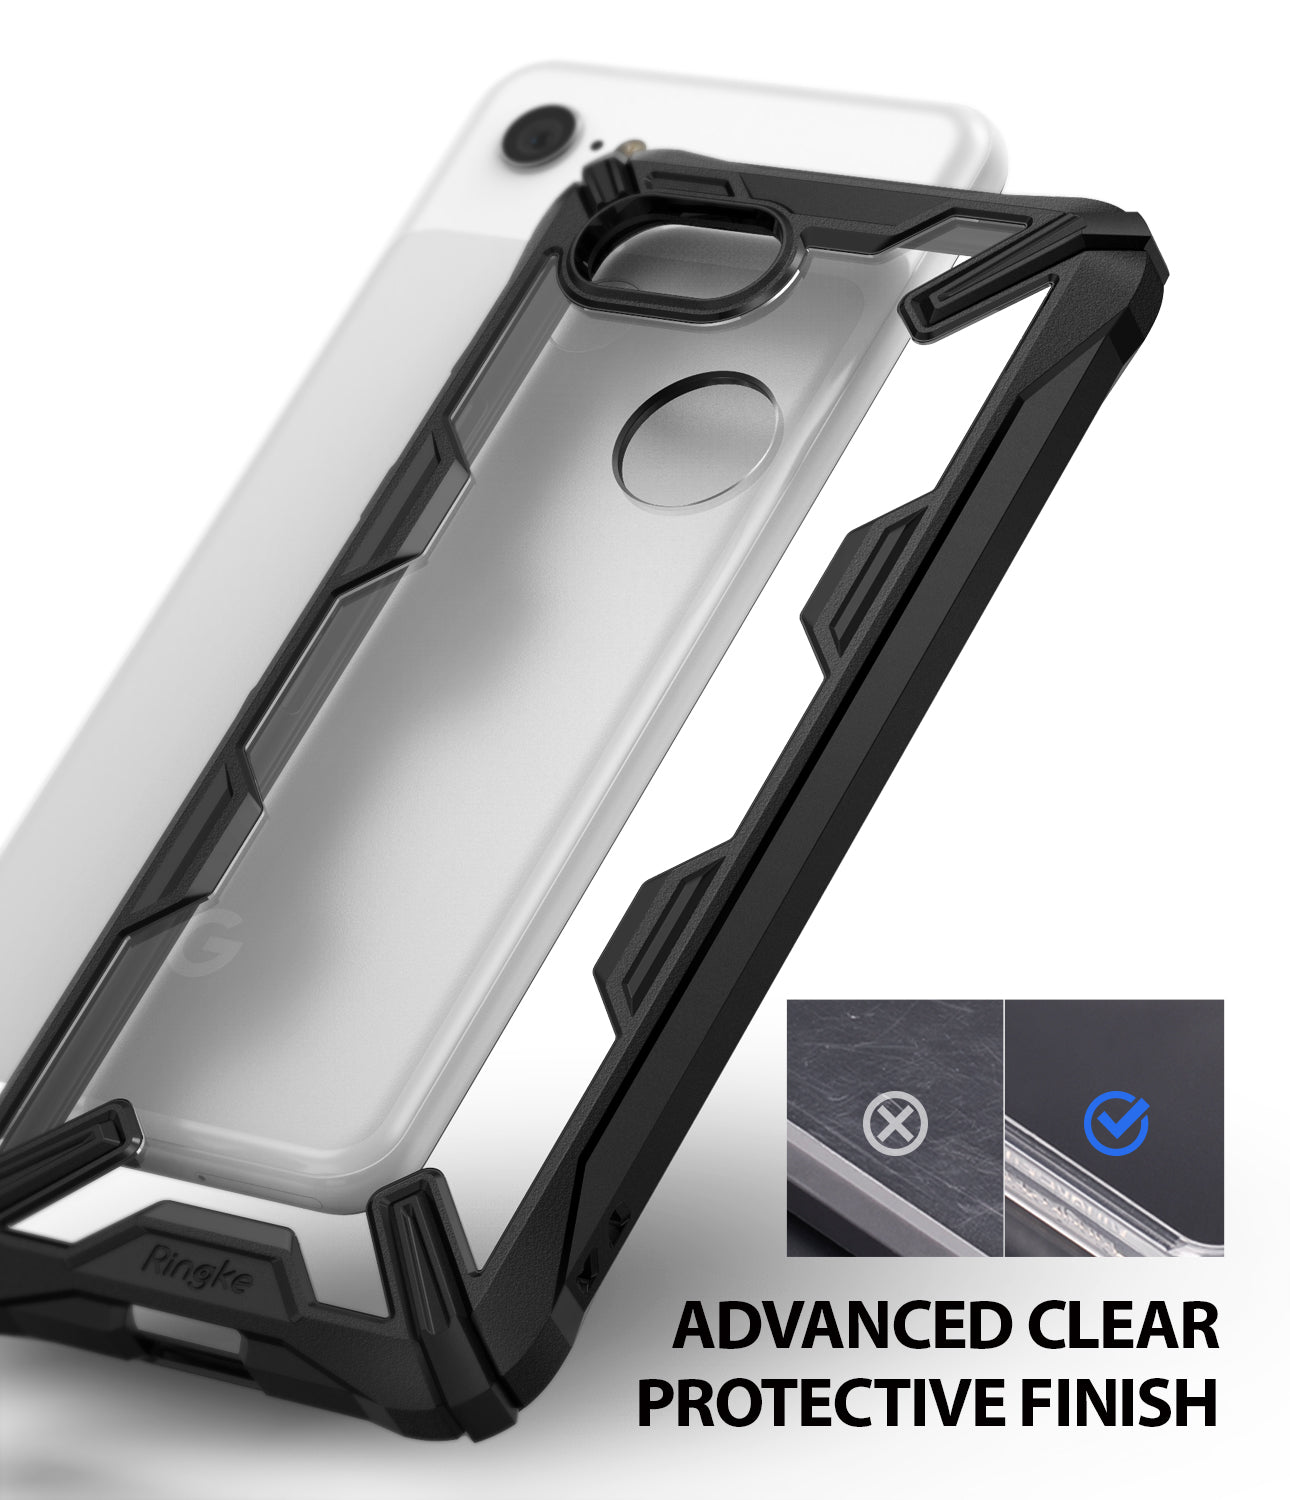 ringke fusion-x rugged heavy duty clear back case cover for google pixel 3 main anti cling technology